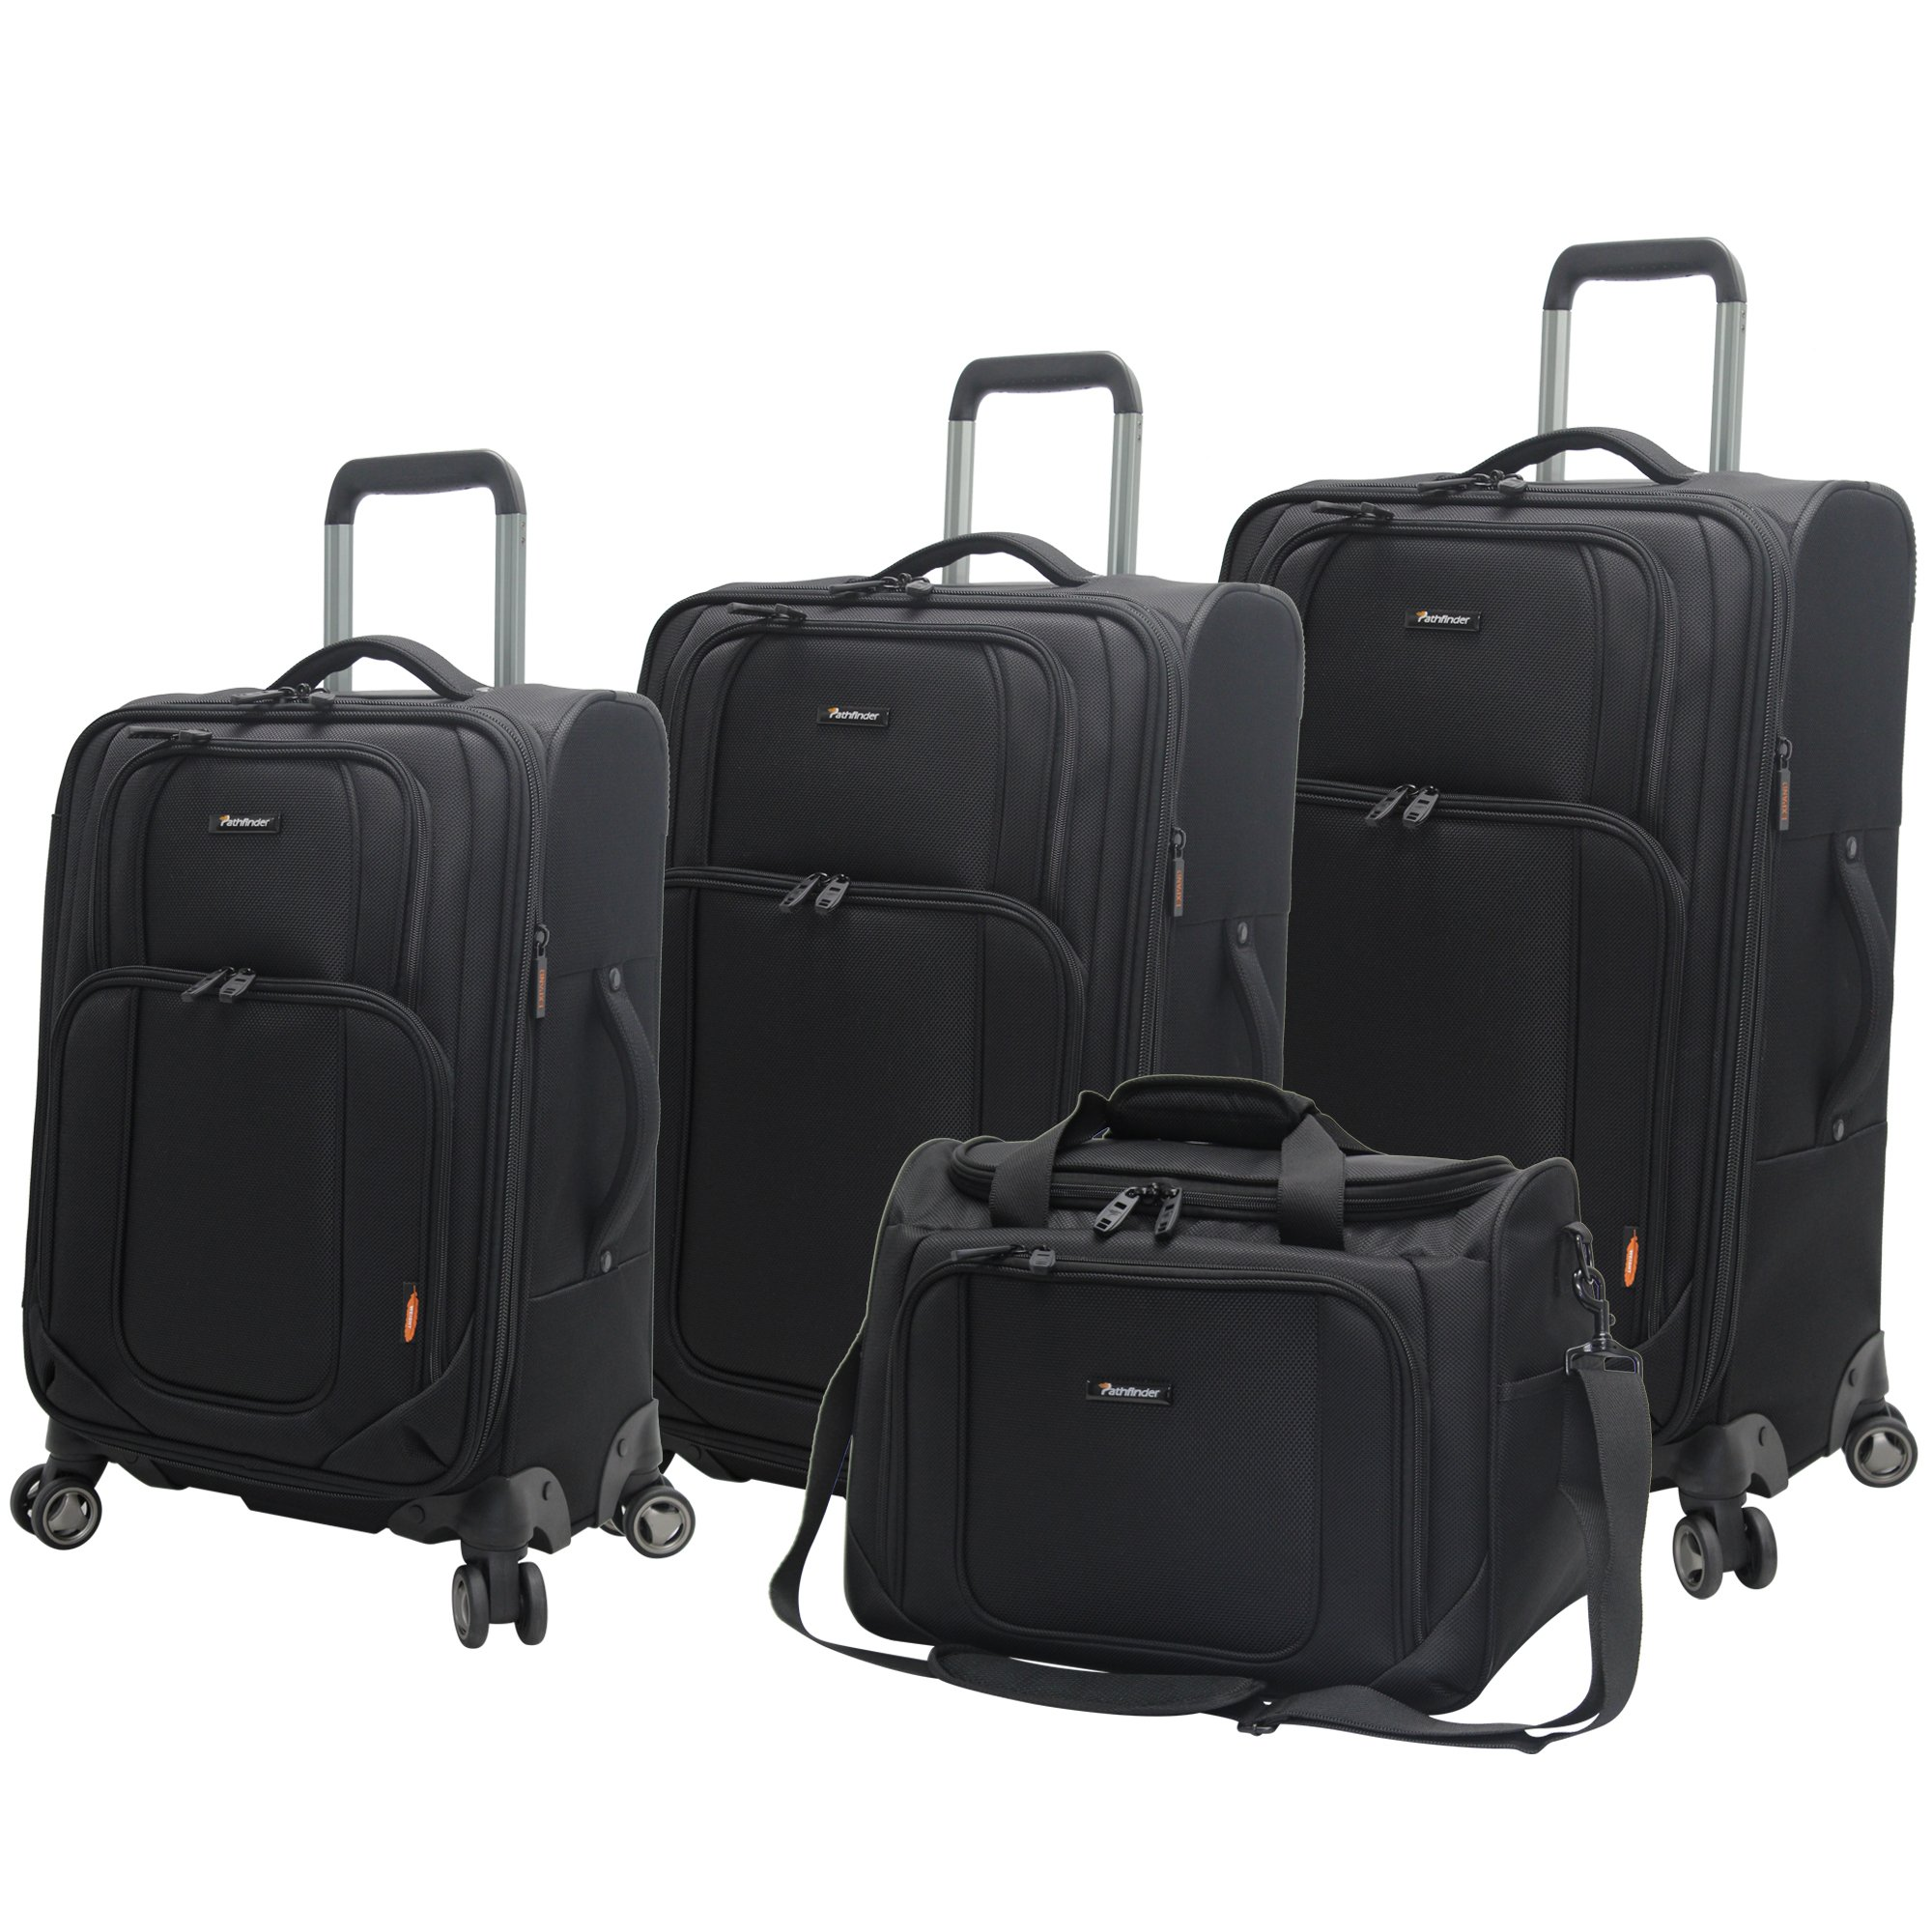 Pathfinder Luggage Presidential 4 piece Spinner Suitcase Set (Black)